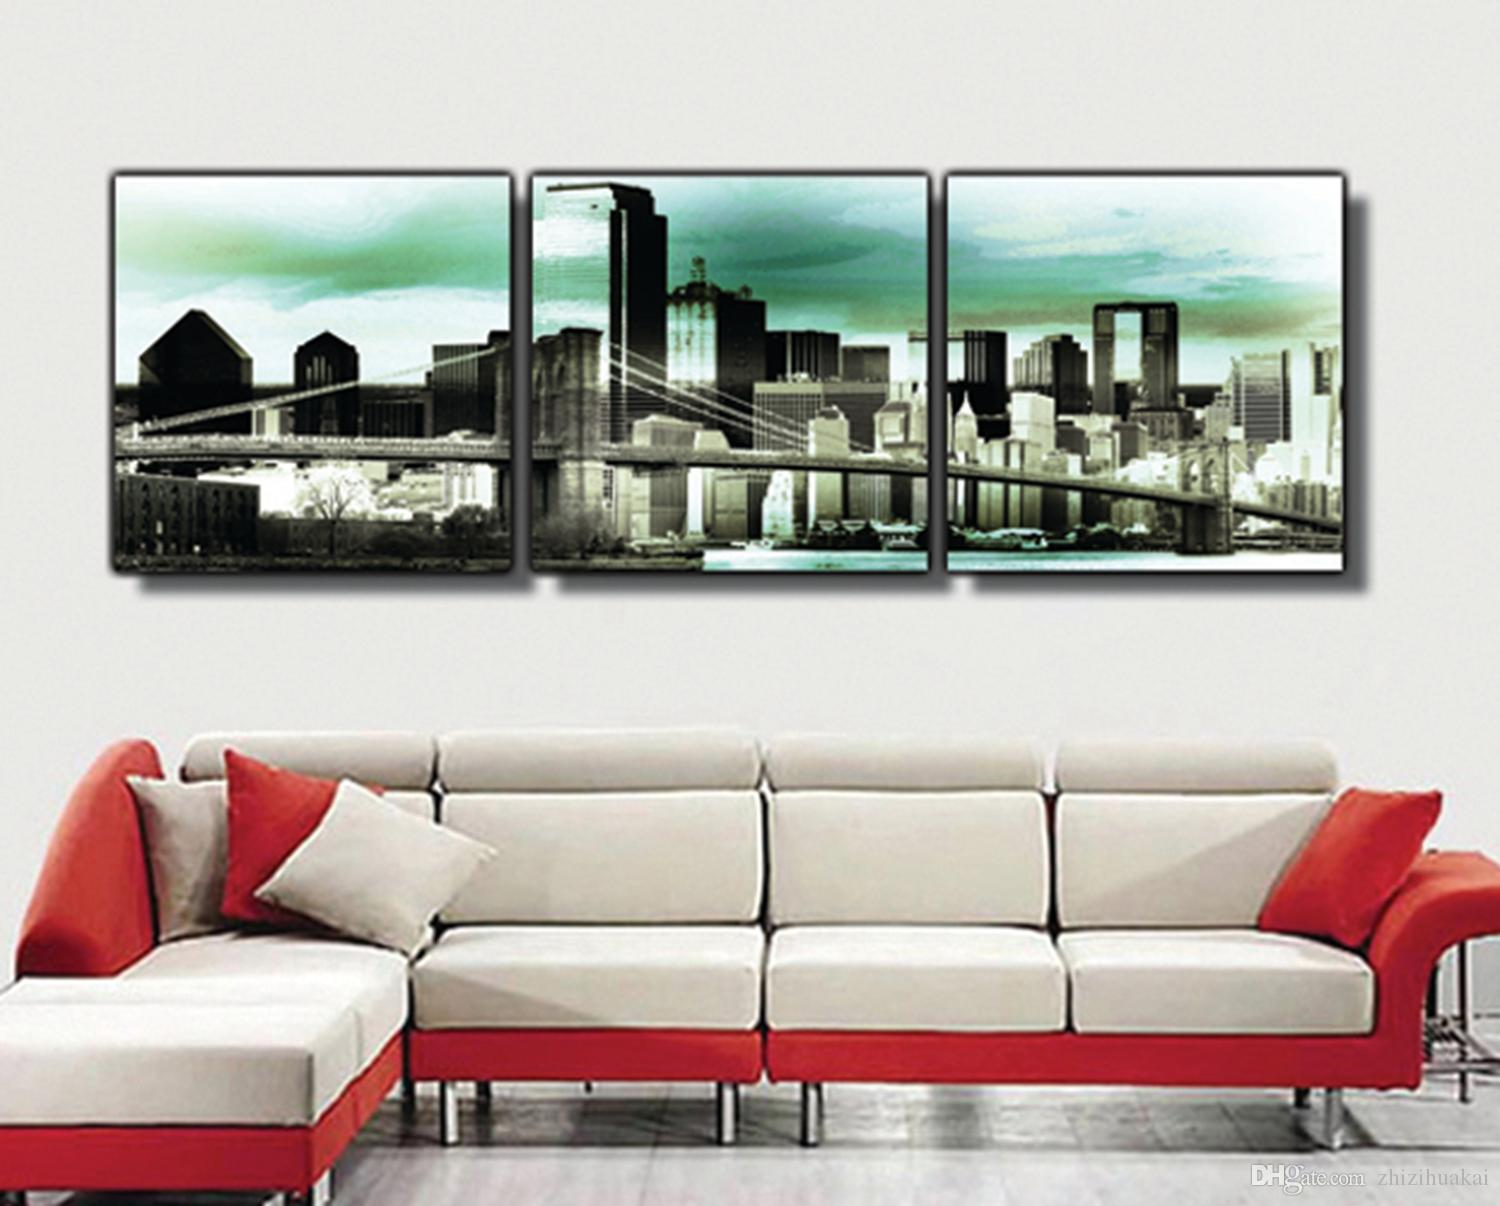 3 Pieces Free shipping Art Picture Paint on Canvas Prints Brooklyn Bridge France Napoleon Eiffel Tower Sydney Opera House New York Beiijing